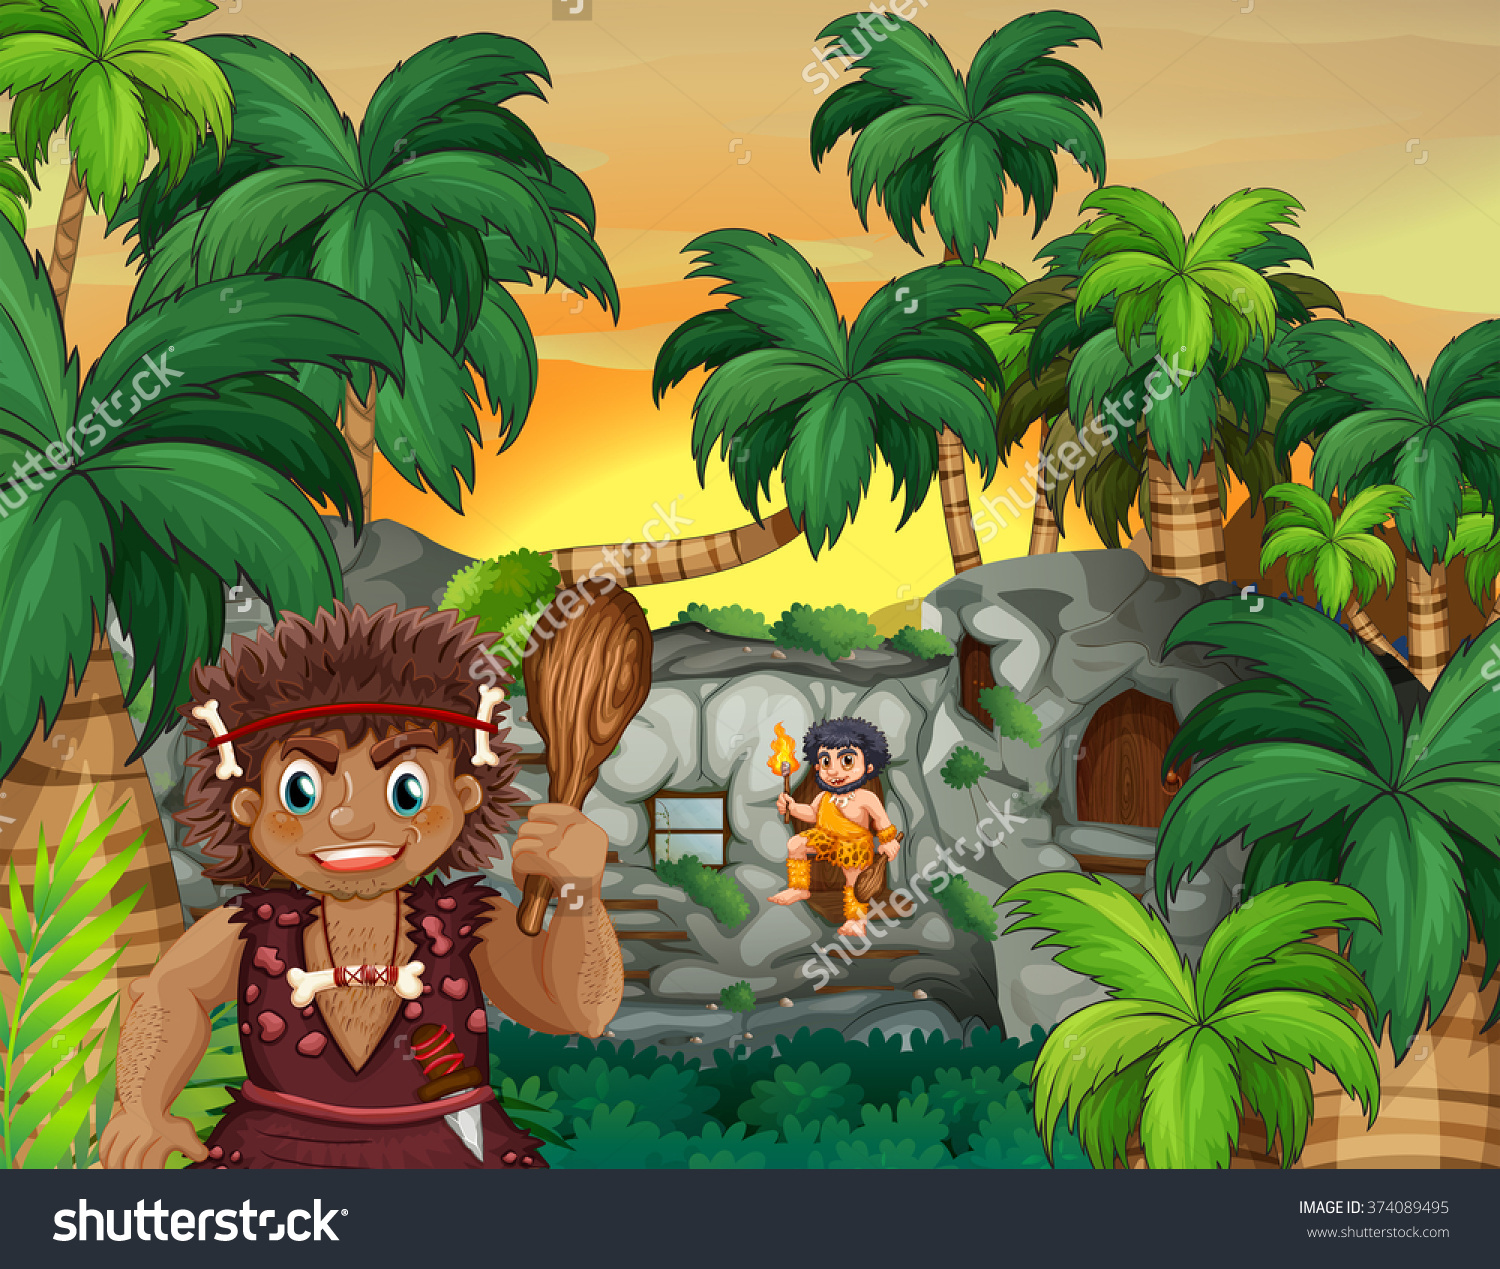 Cave People Living Forest Illustration Stock Vector 374089495.